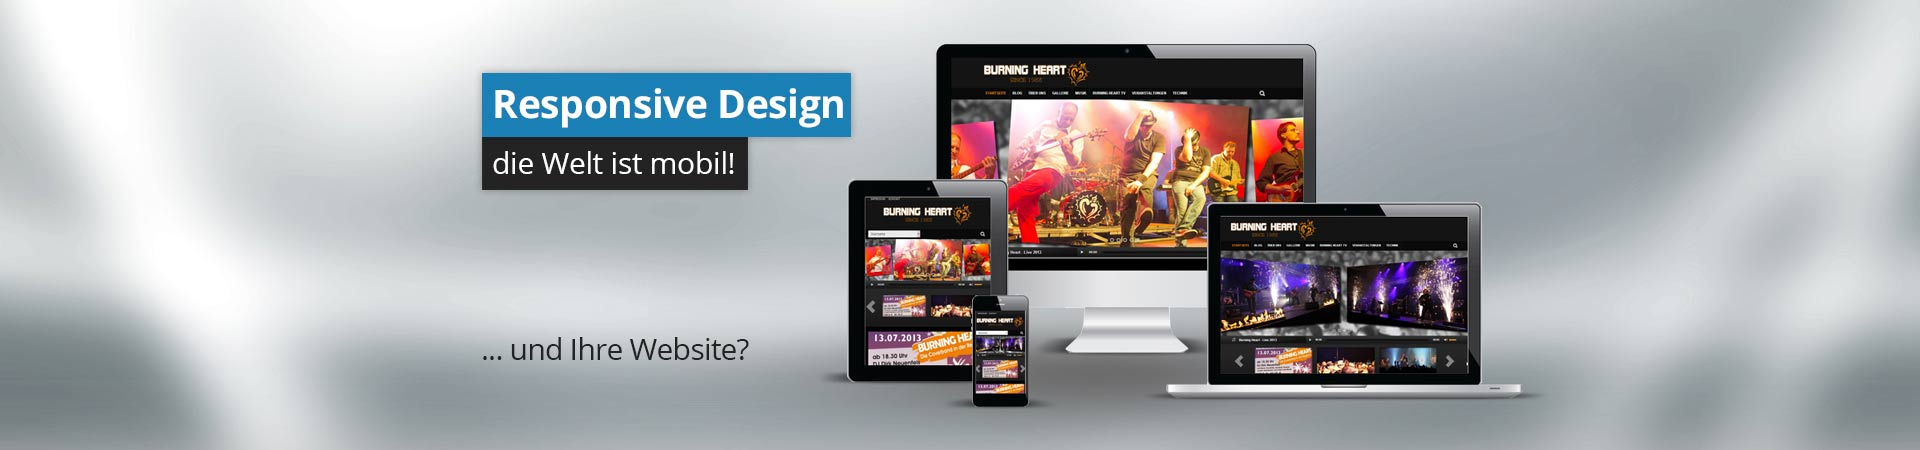 Responsive Design - Mobiles Webdesign